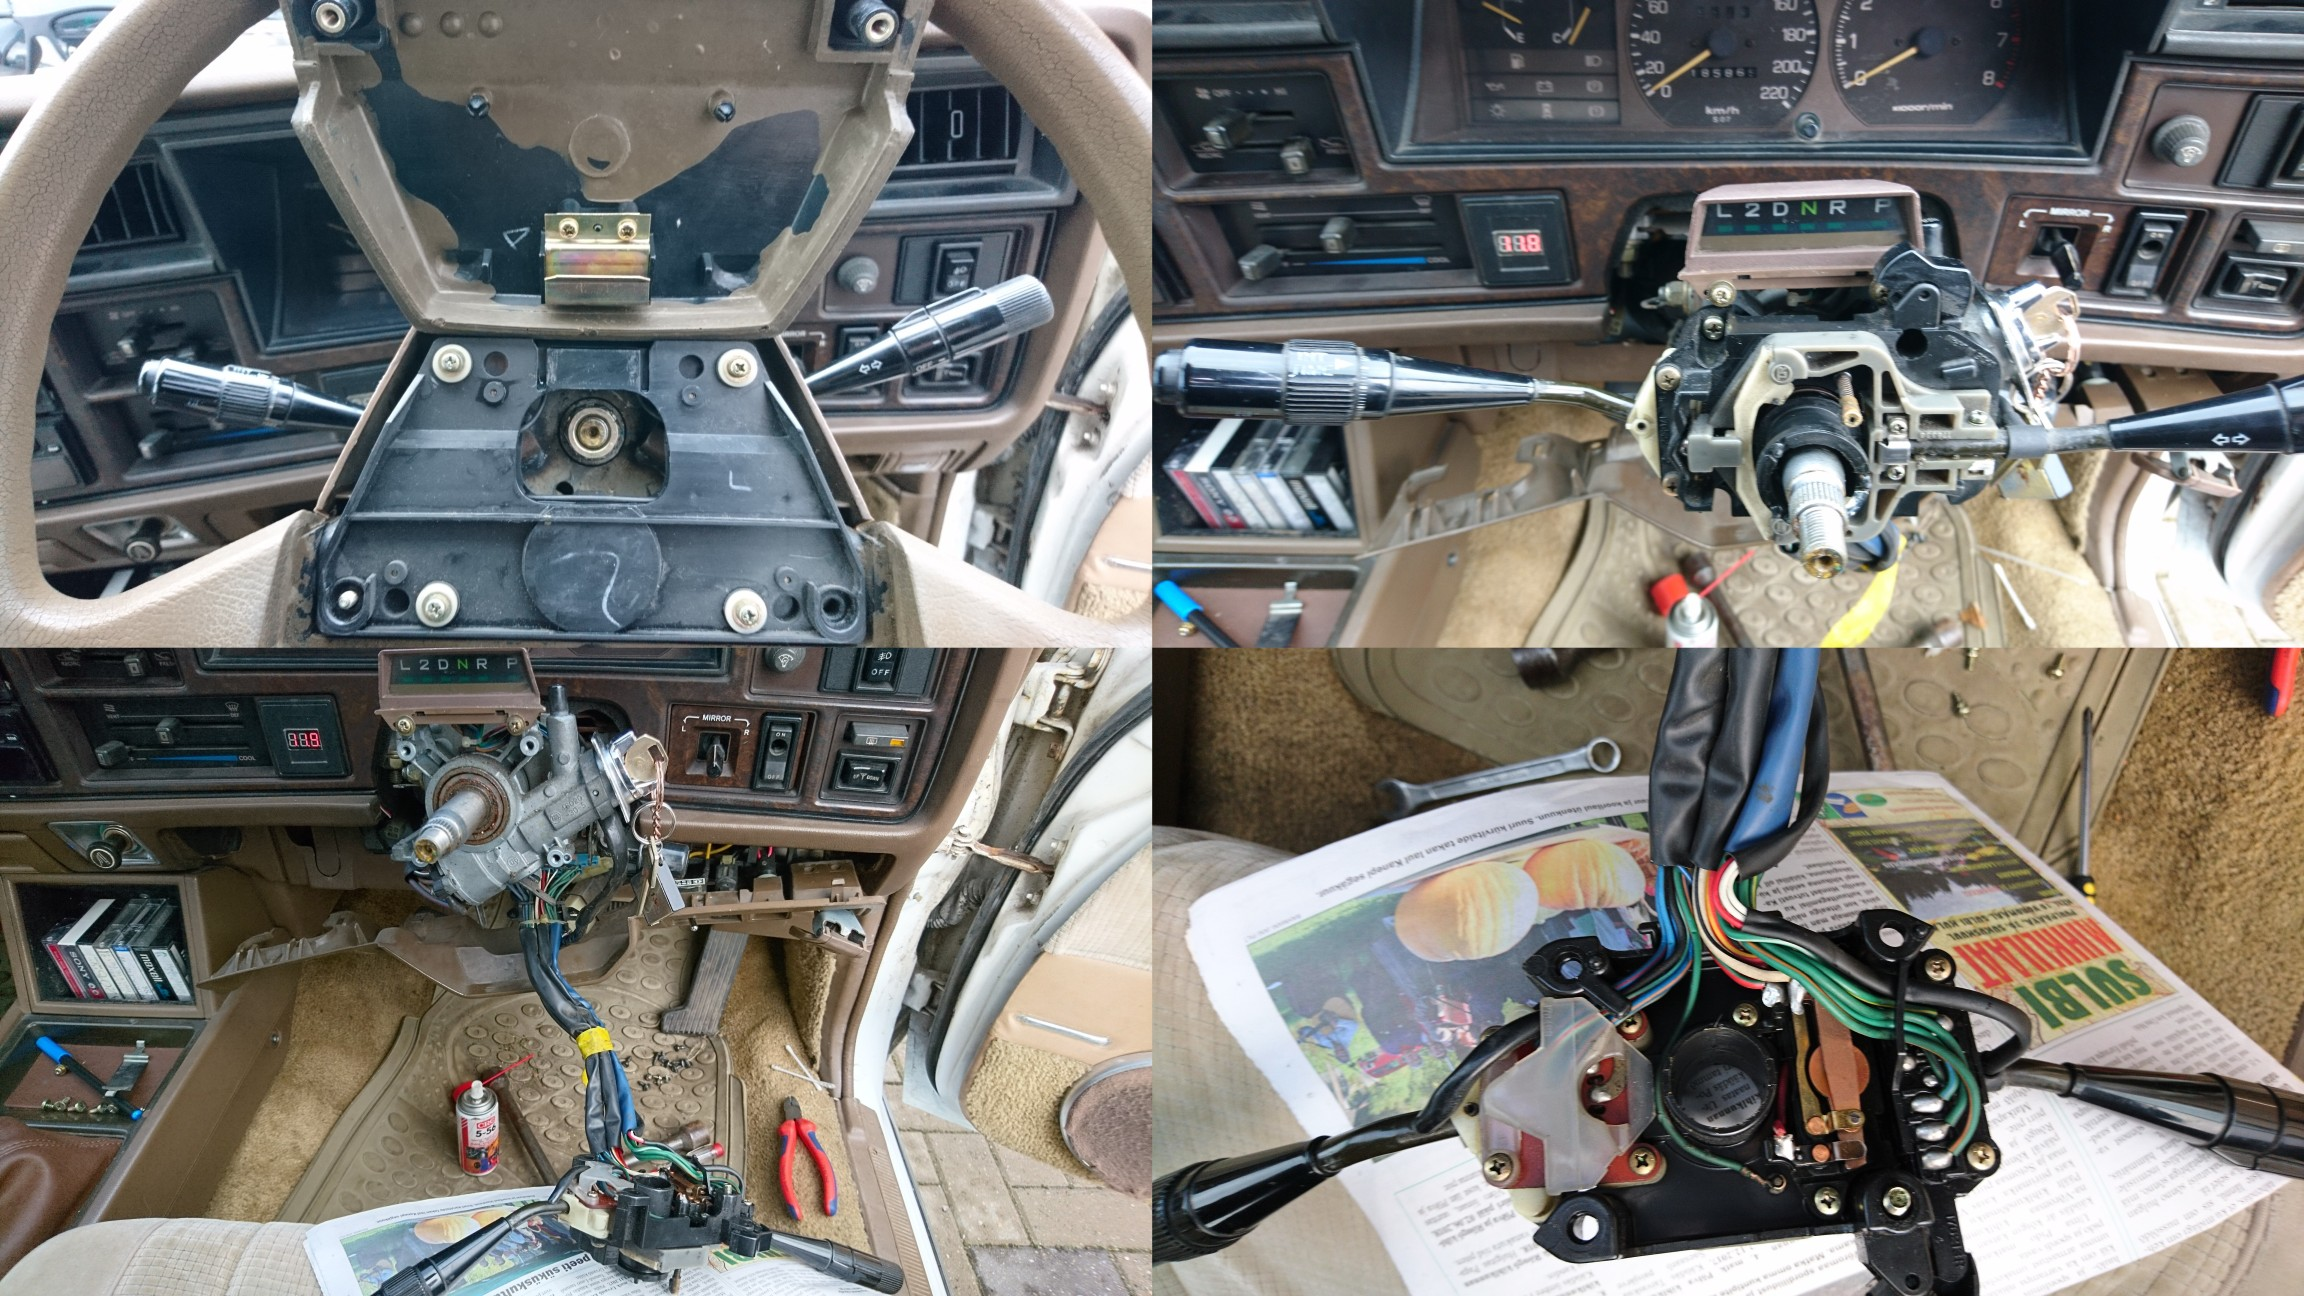 fba93ae4a73 Toyota Crown LS110 & MS110